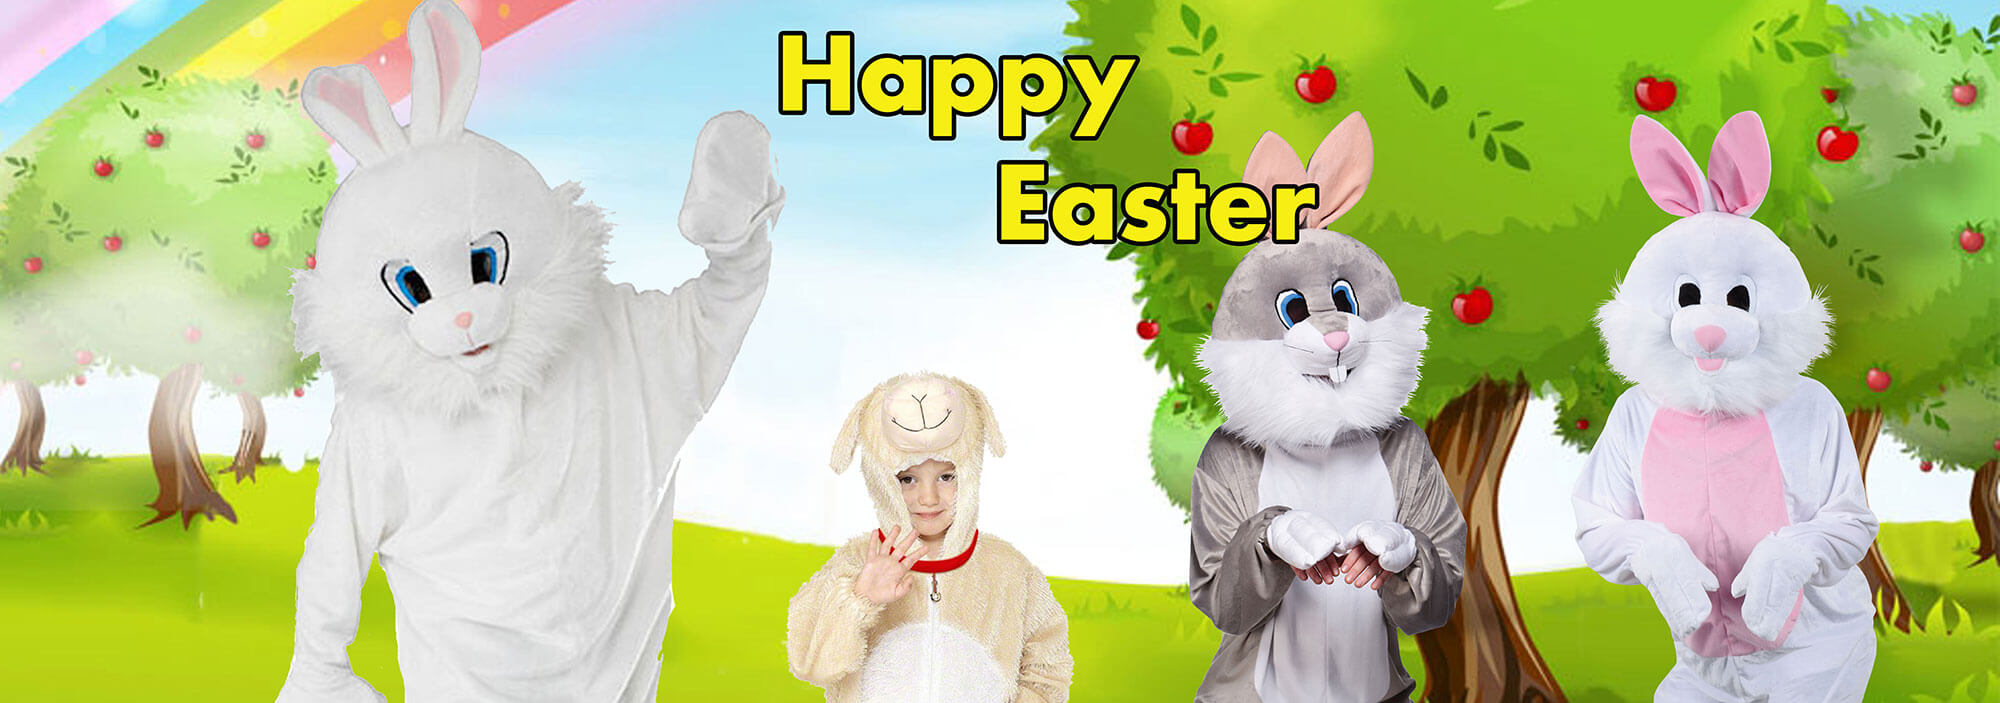 Happy Easter Everybody - Elliotts have Bunny Mascots, Rabbit costumes for kids & adults -plus some ducks and chickens-